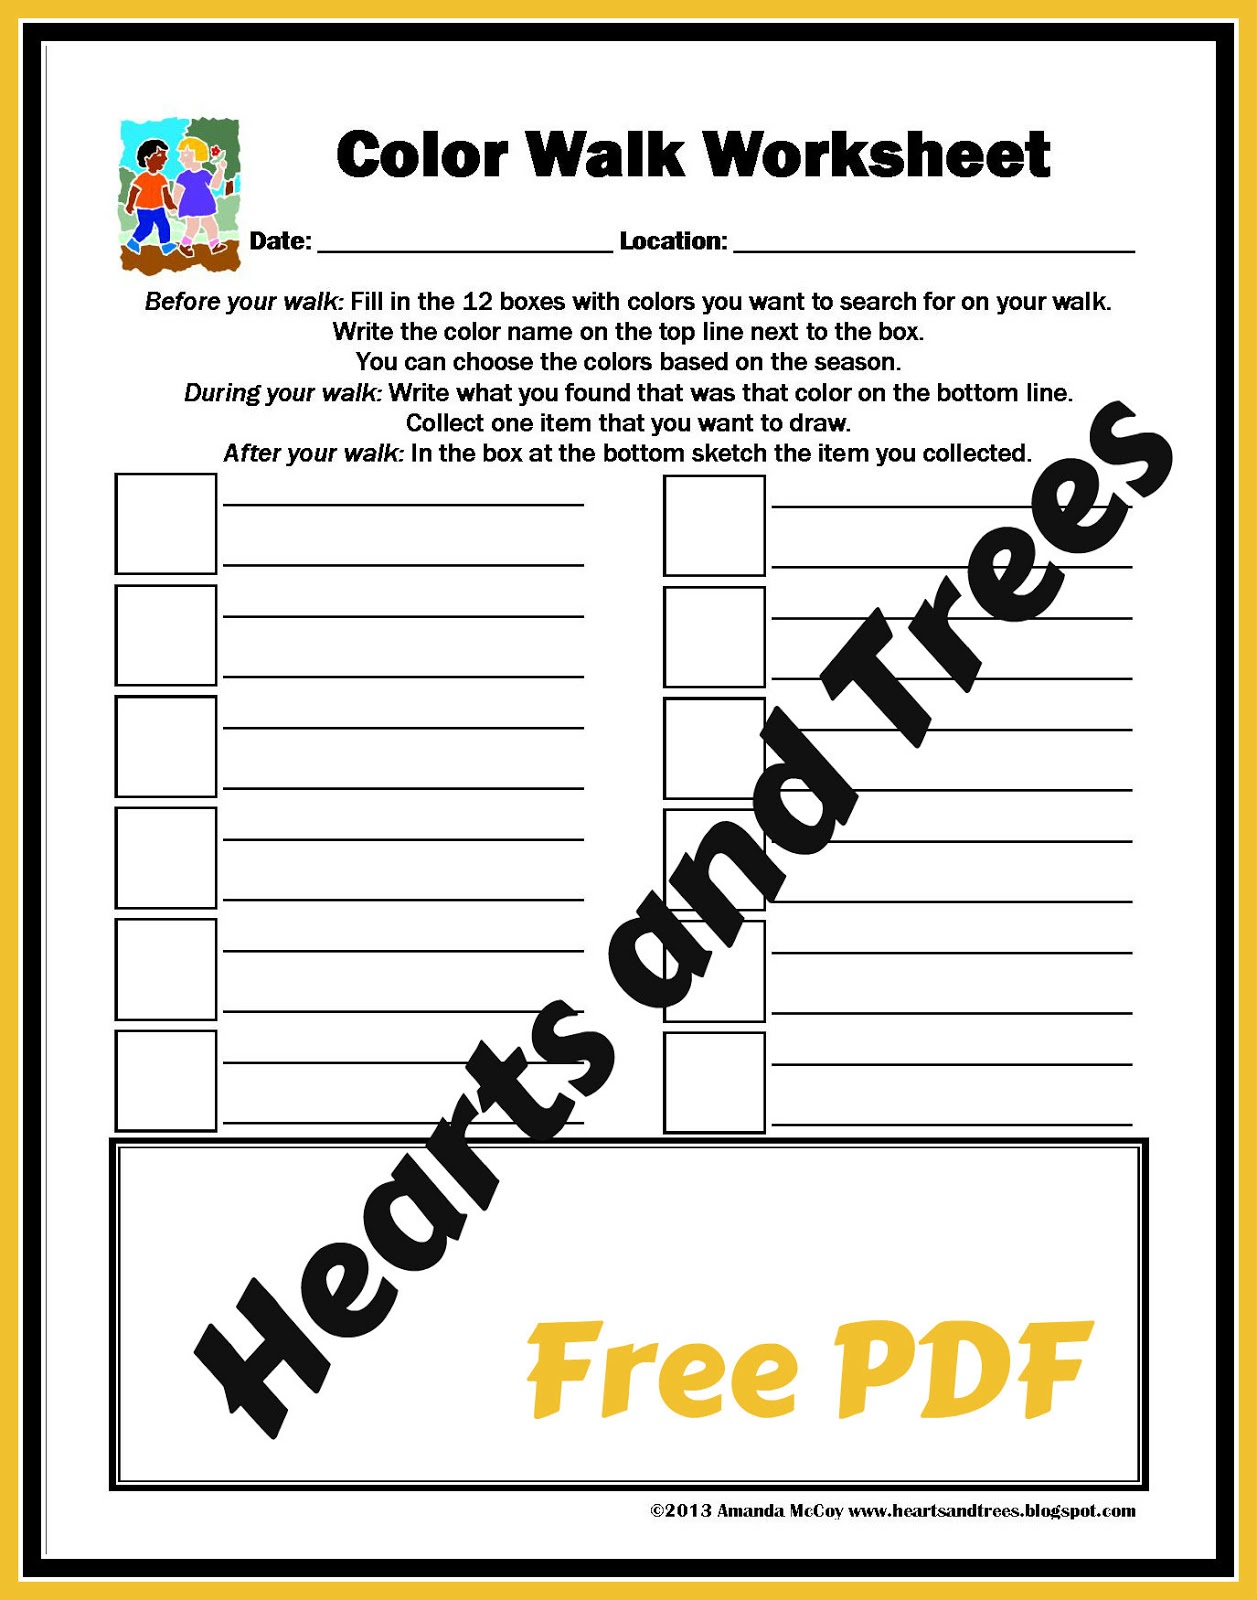 Hearts And Trees Free Printable Color Walk Worksheet